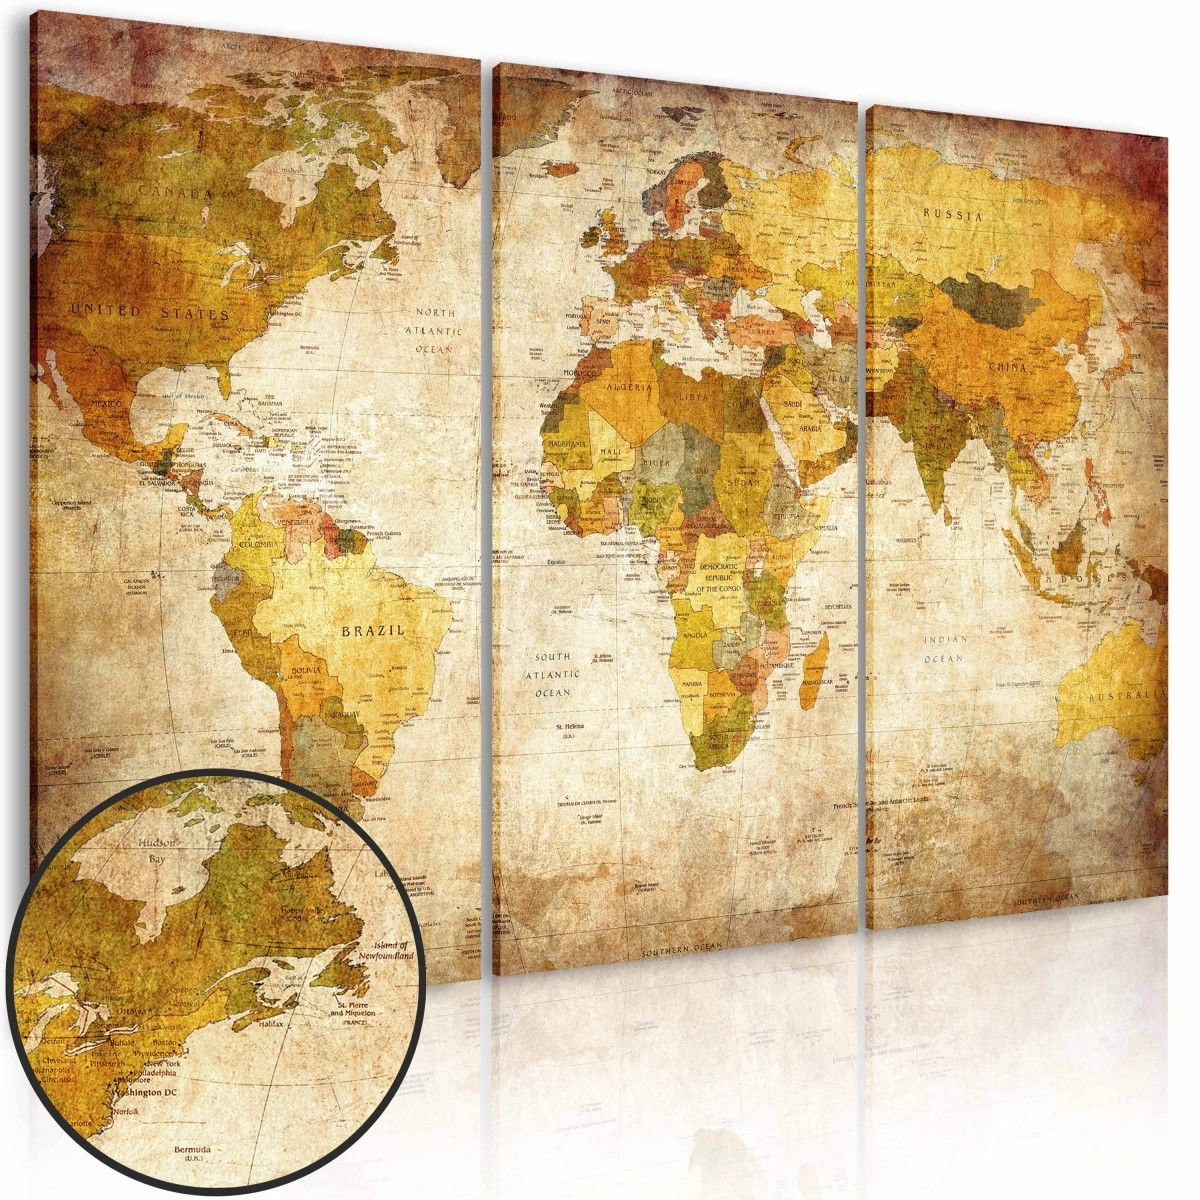 Obraz antyczne podre obrazy na ptnie gotowe do powieszenia wops canvas prints map world art wall decor 3 panel large world map pictures print on canvas antiquated art for home office decoration gumiabroncs Images